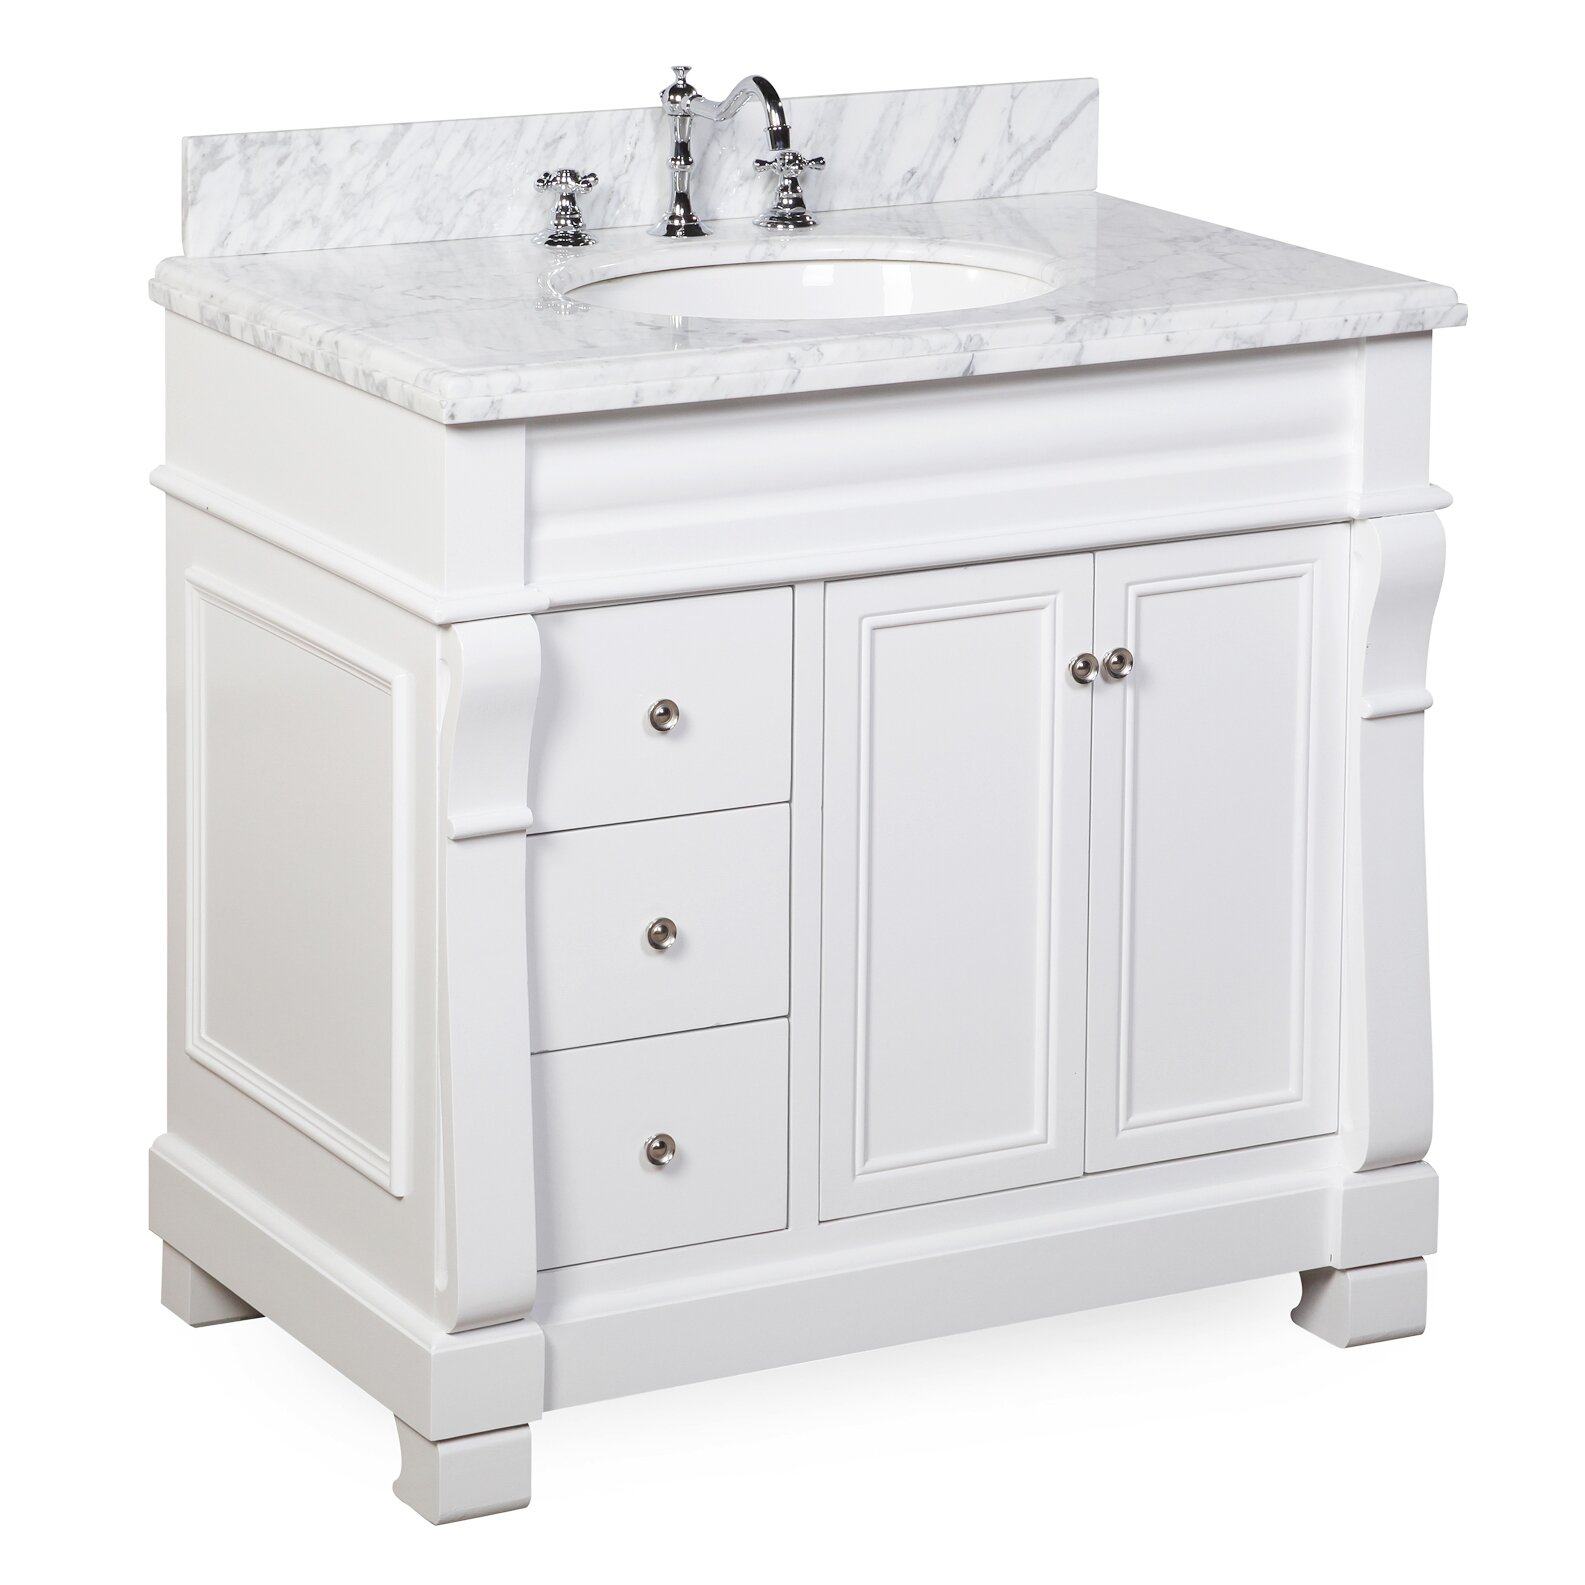 Kbc westminster 36 single bathroom vanity set reviews for Bathroom 36 vanities